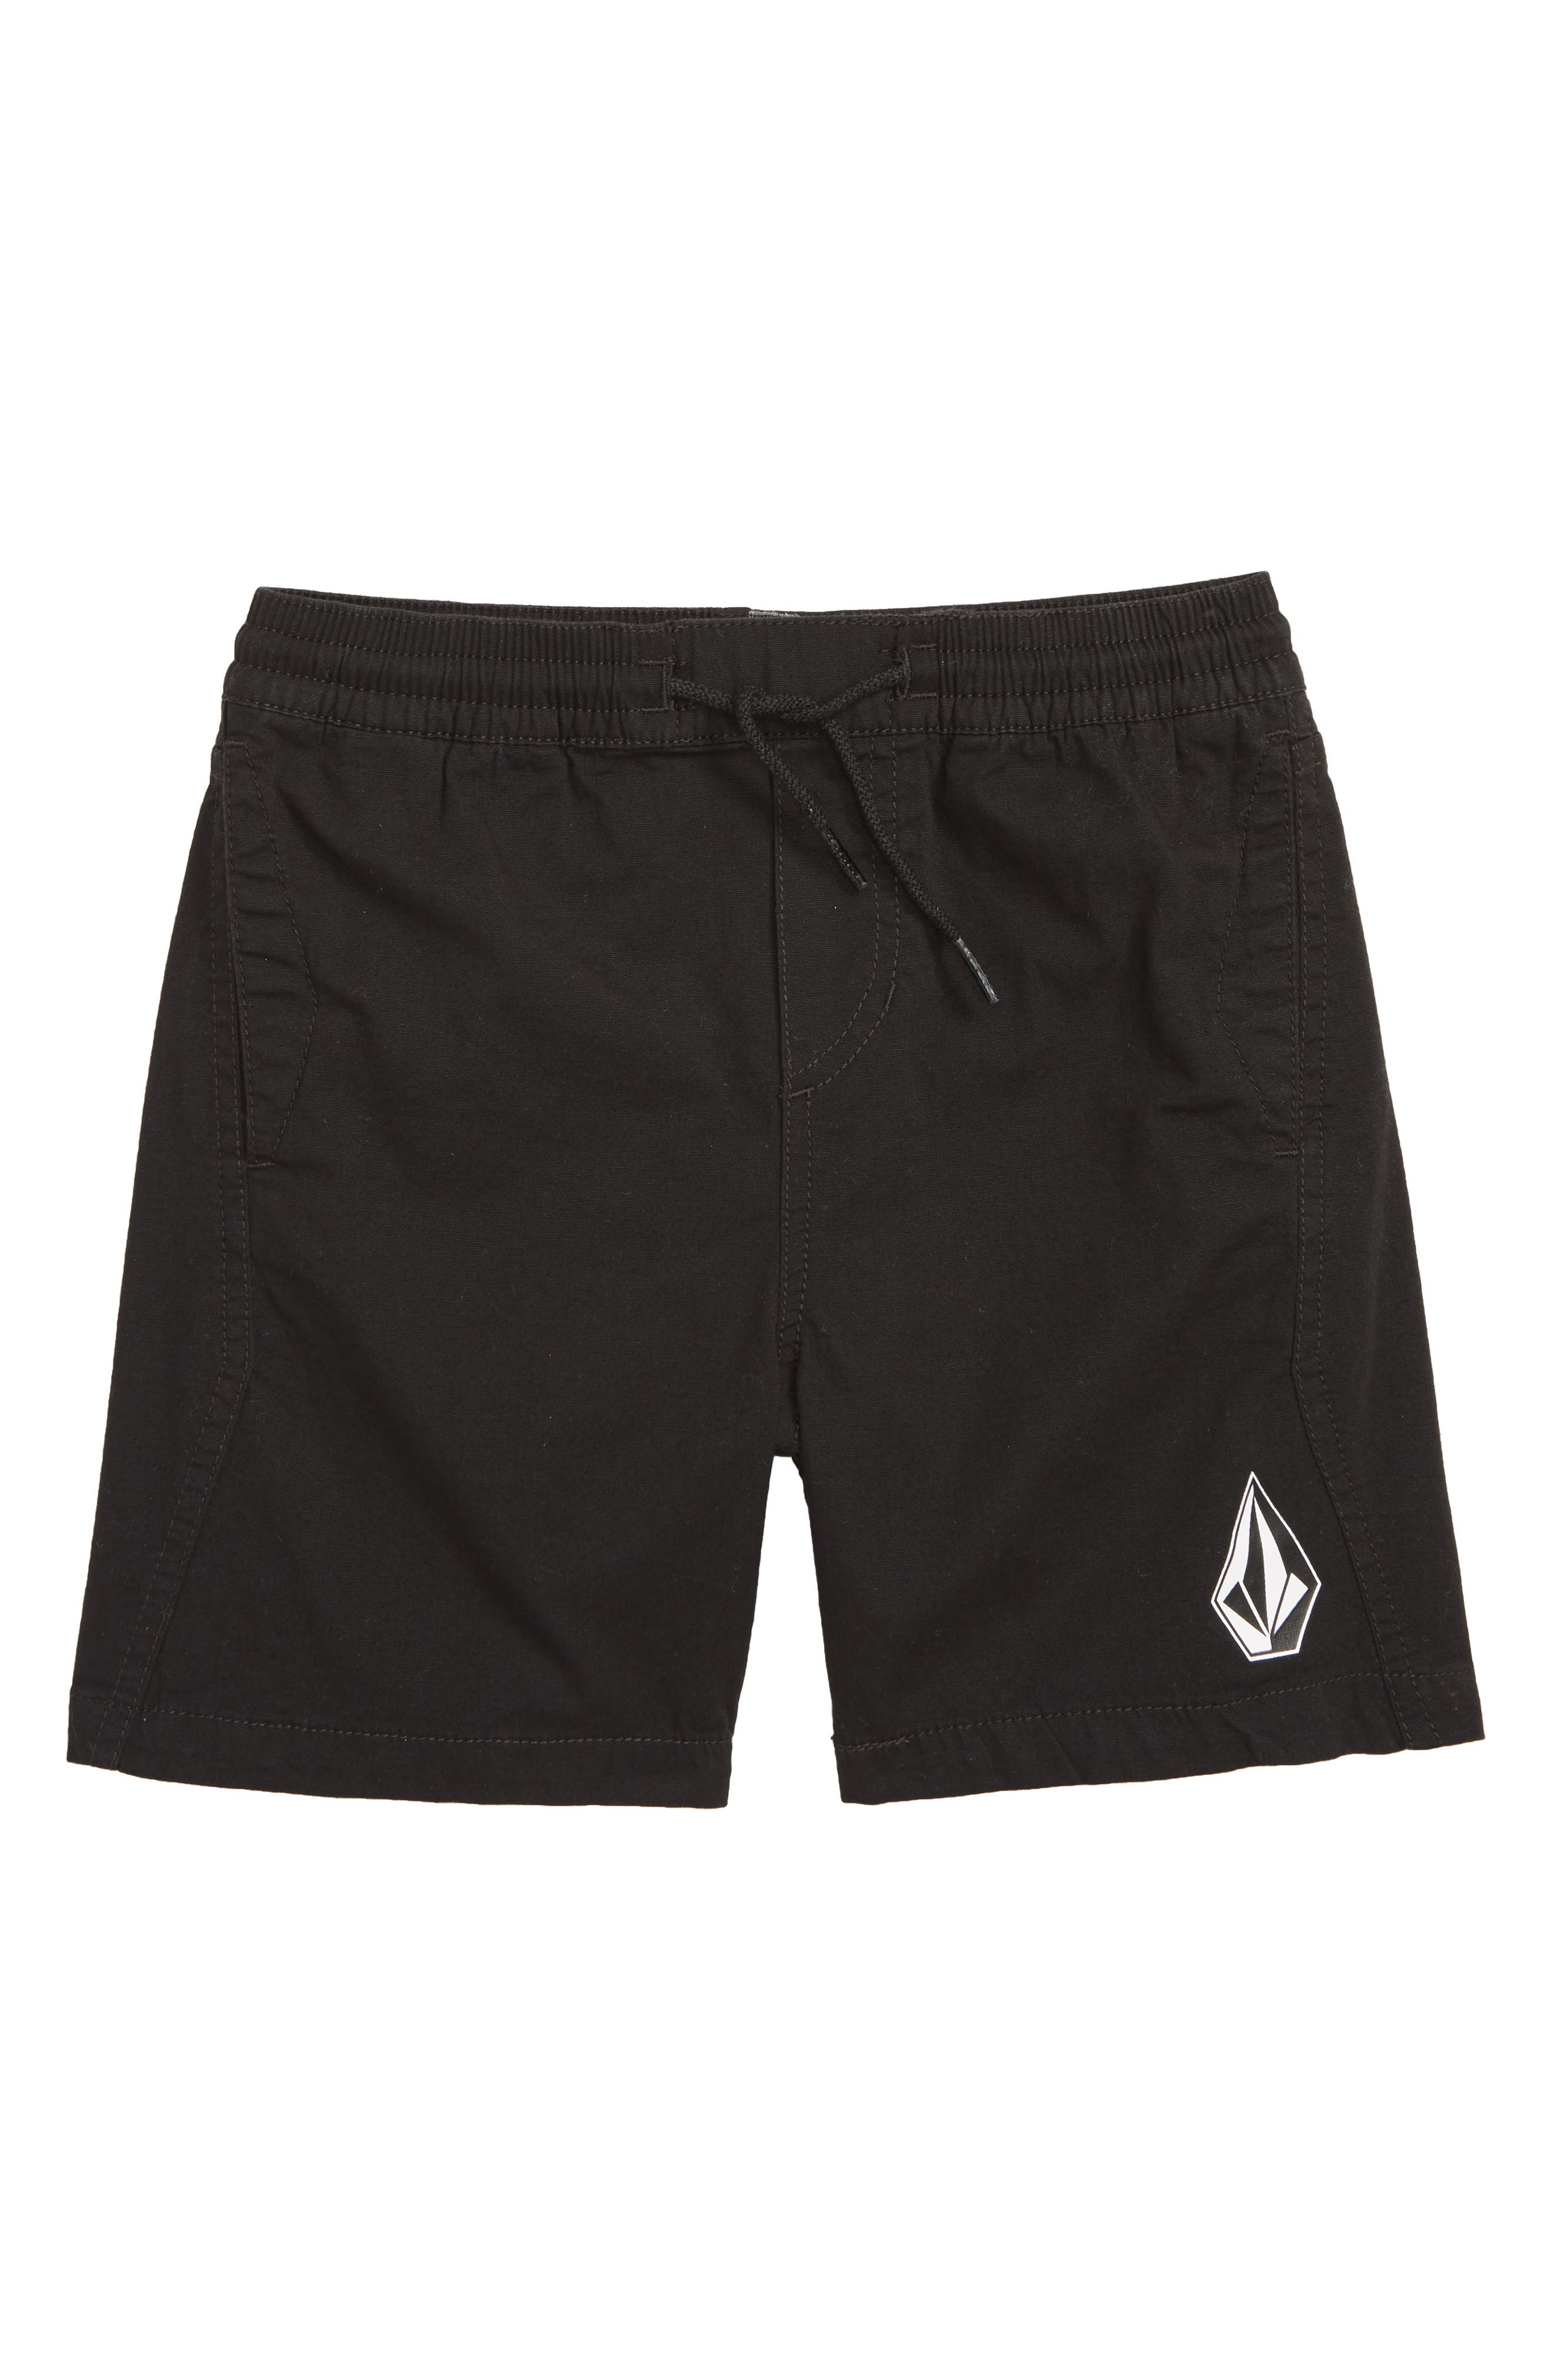 Deadly Stones Shorts,                         Main,                         color, Black